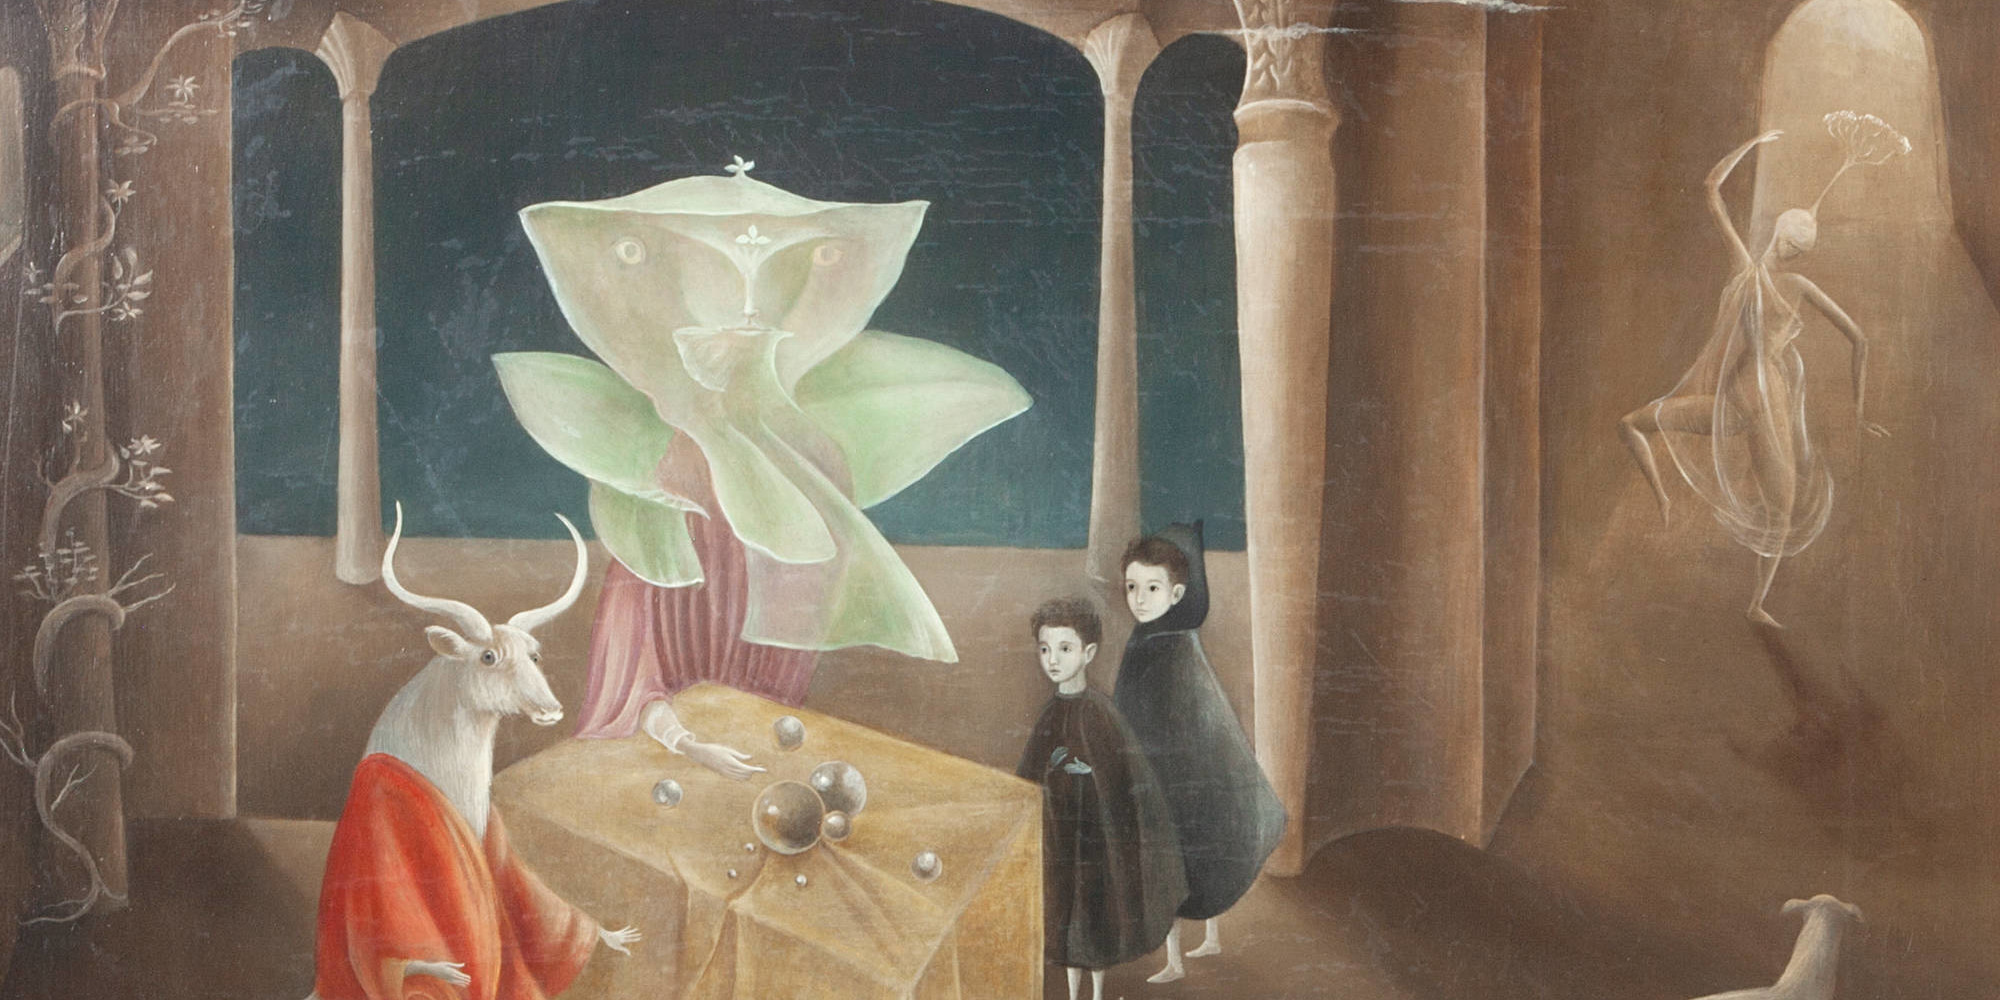 "Leonora Carrington. And Then We Saw the Daughter of the Minotaur. 1953. Oil on canvas, 23 5/8 × 27 9/16"" (60 × 70 cm). Gift of Joan H. Tisch (by exchange). © 2020 Leonora Carrington/Artists Rights Society (ARS), New York"